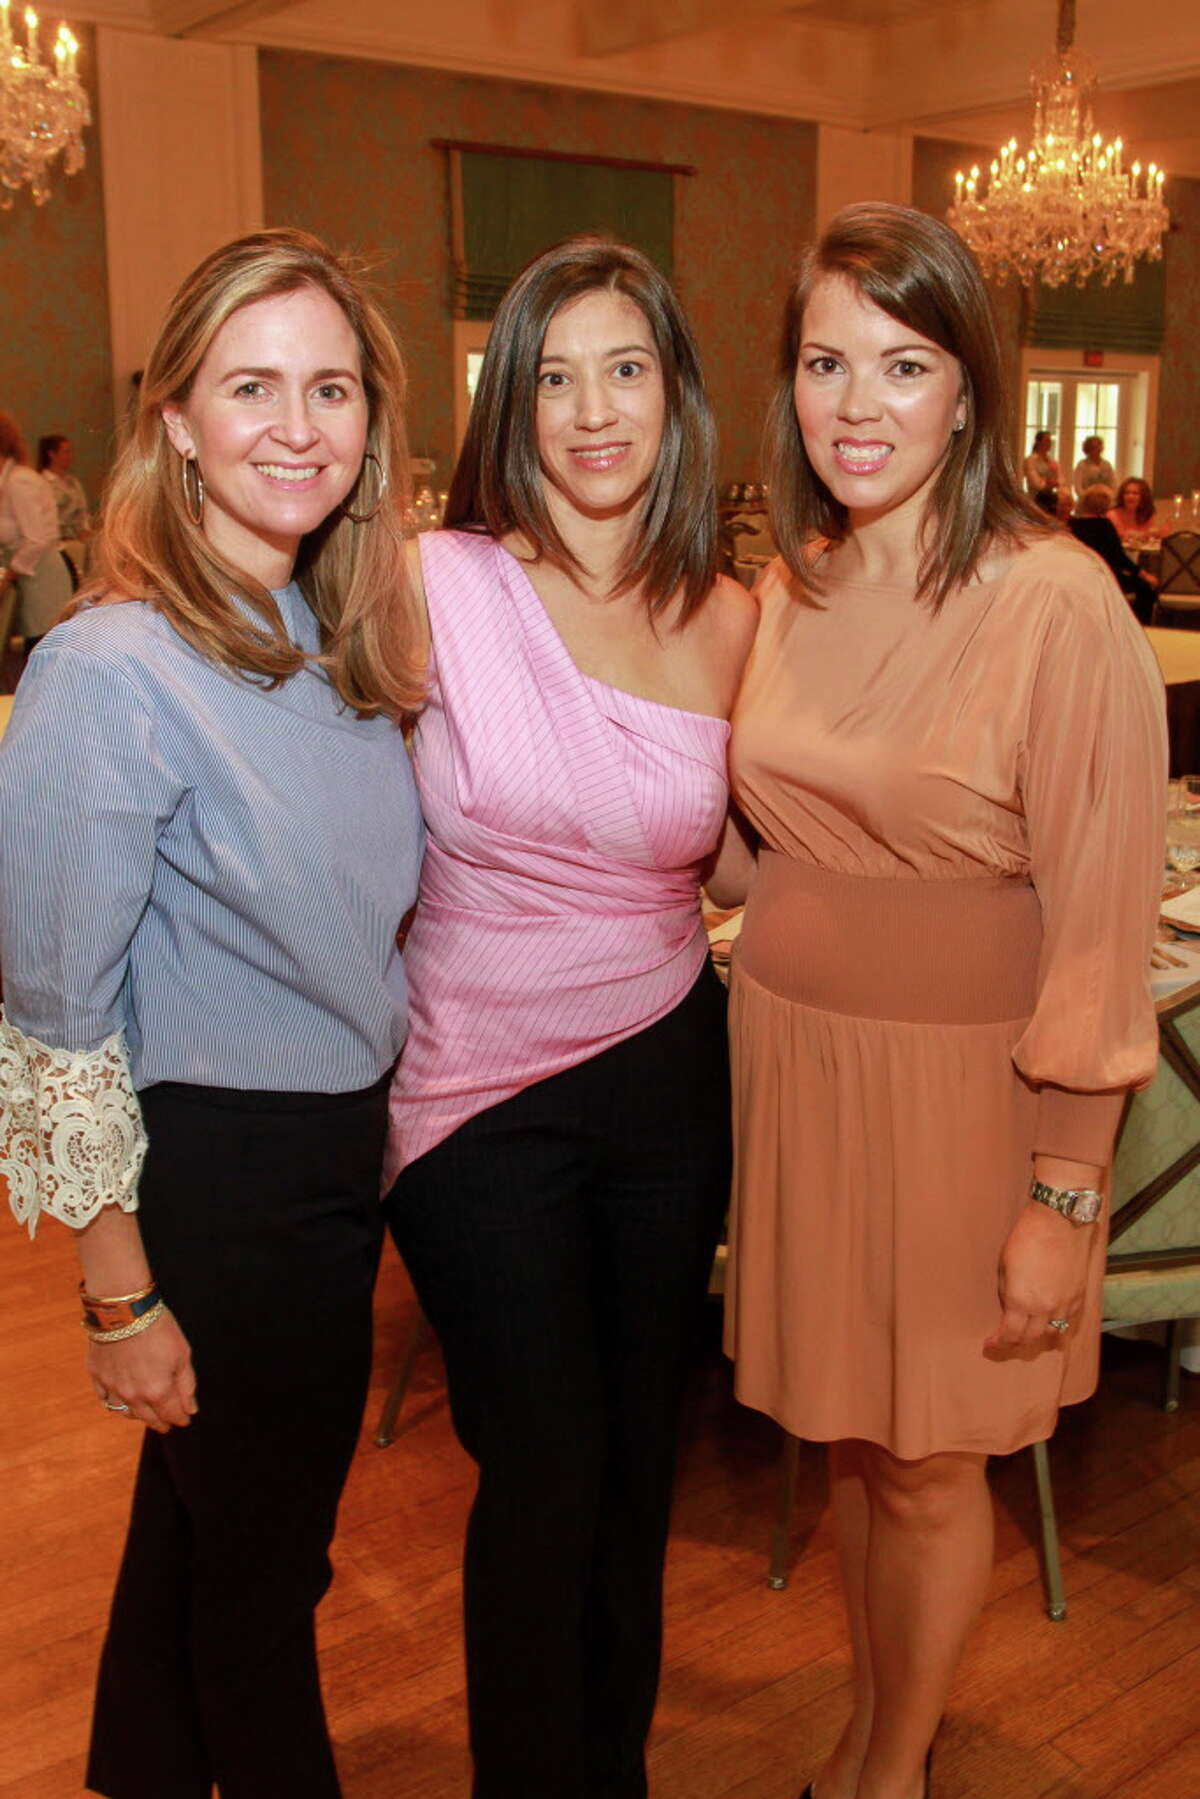 Macari Potter, from left, Sarah Snyder and Mary Lee Wilkens at the Beauty in Motion luncheon at the Junior League of Houston. (For the Chronicle/Gary Fountain, September 15, 2017)